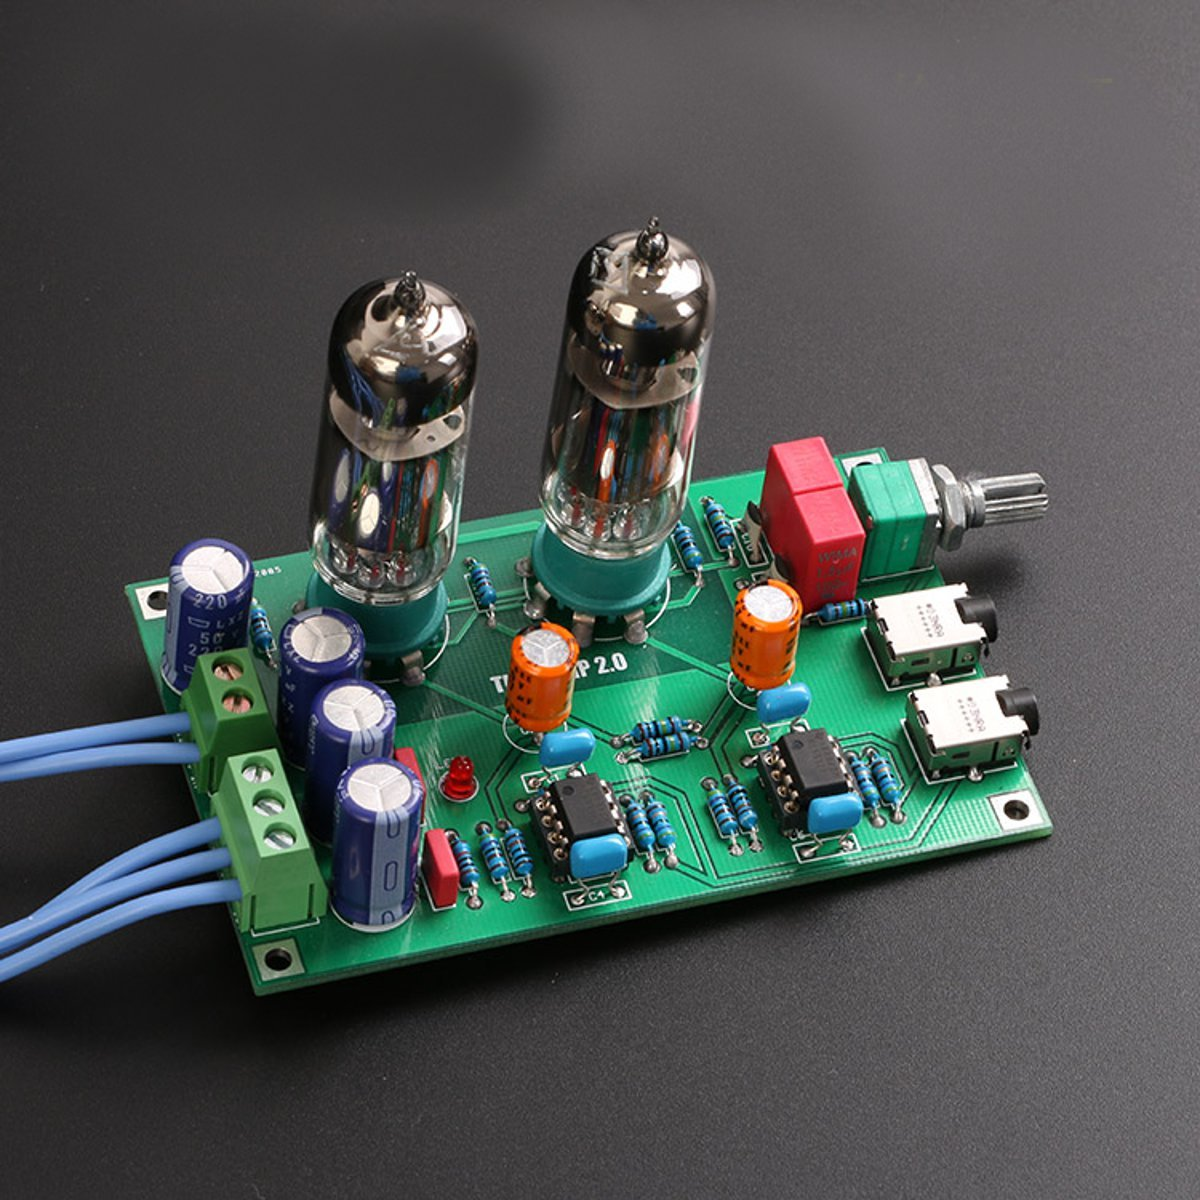 Amazon.com: ILS - DIY Class A 6J5 Vacuum Tube Preamp Preamplifier HIFI Headphone Amplifier Kit: Industrial & Scientific